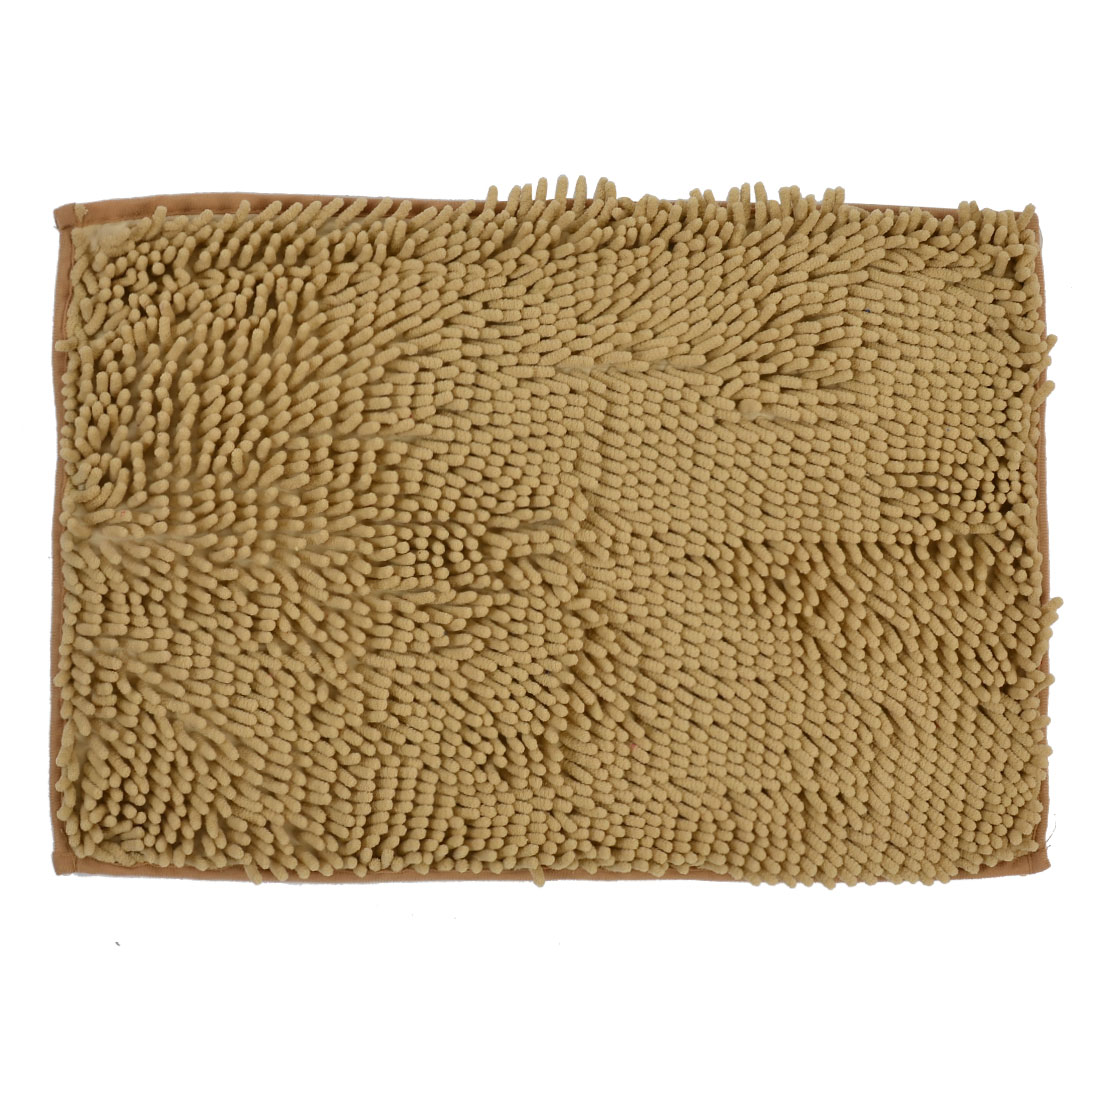 60cm x 40cm Beige Polyester Rectangle Absorbent Non-slip Pad Bath Mat Shower Rug